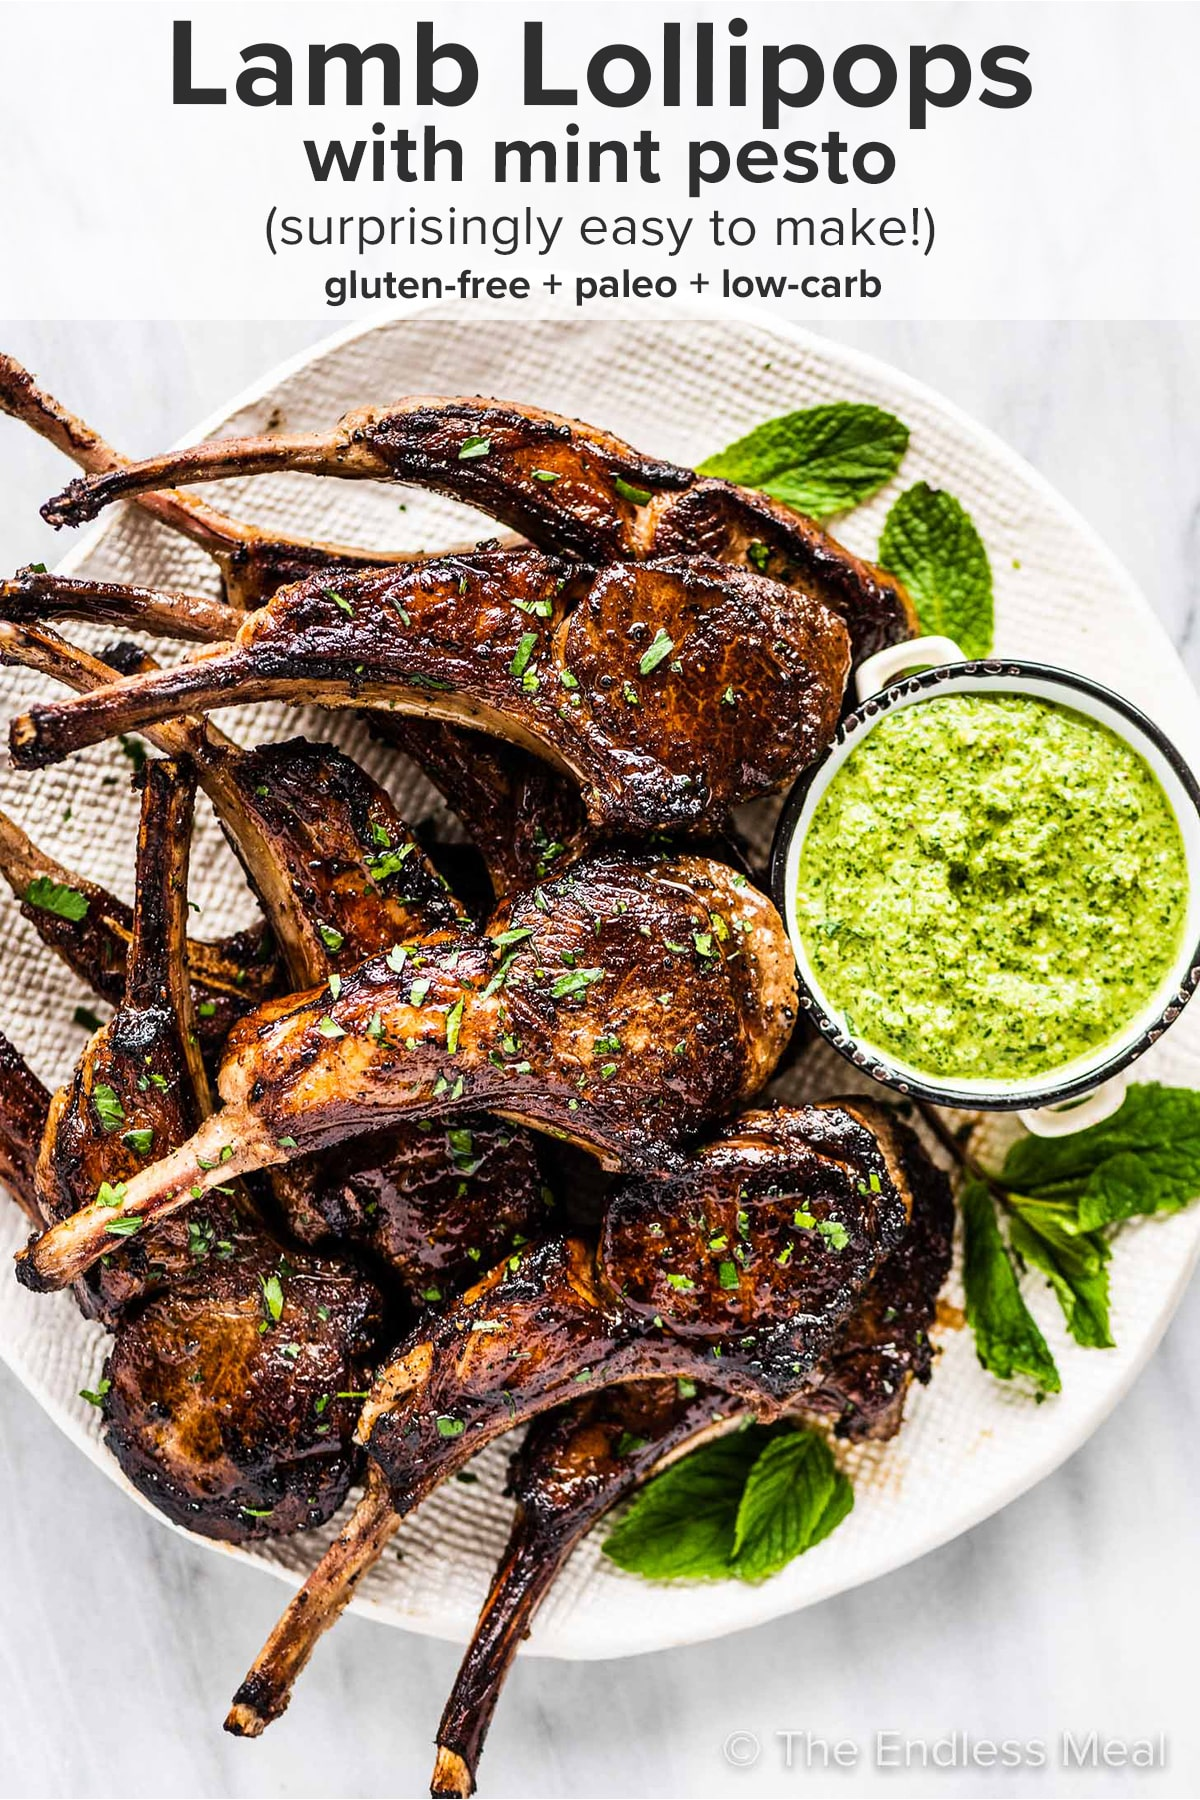 A plate piled with lamb lollipops with mint pesto on the side and the recipe title on top of the picture.